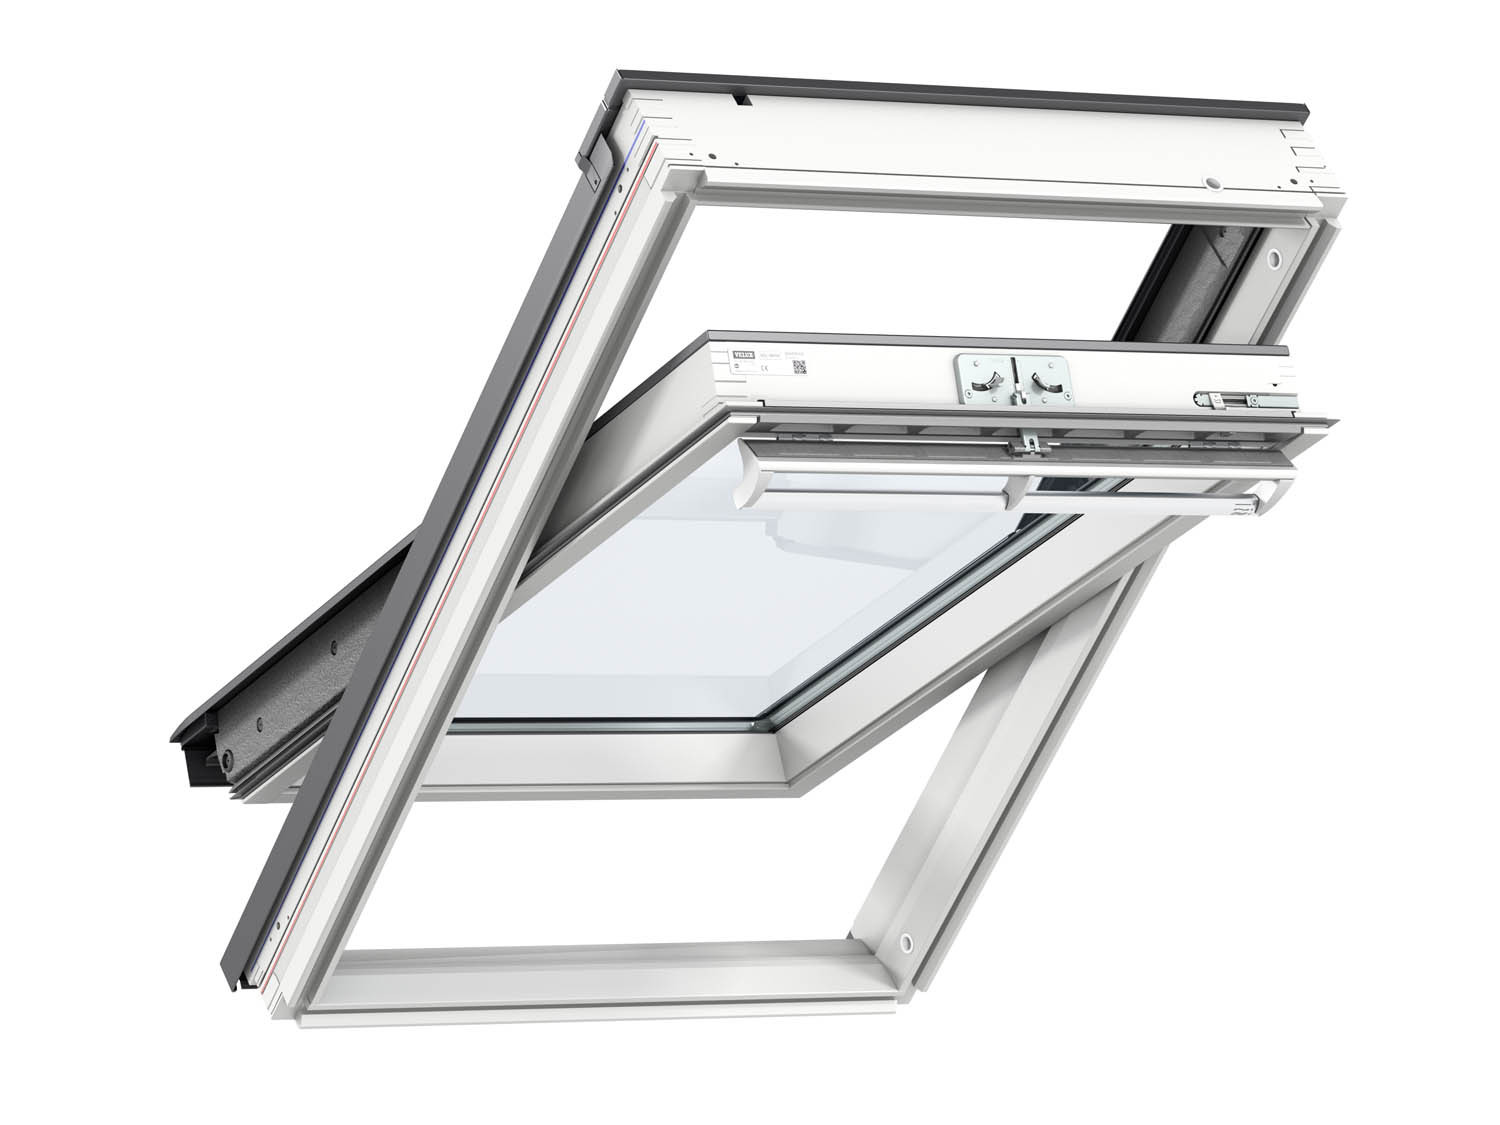 Velux 780mm x 1.18m White Roof Window GGL2070 MK06